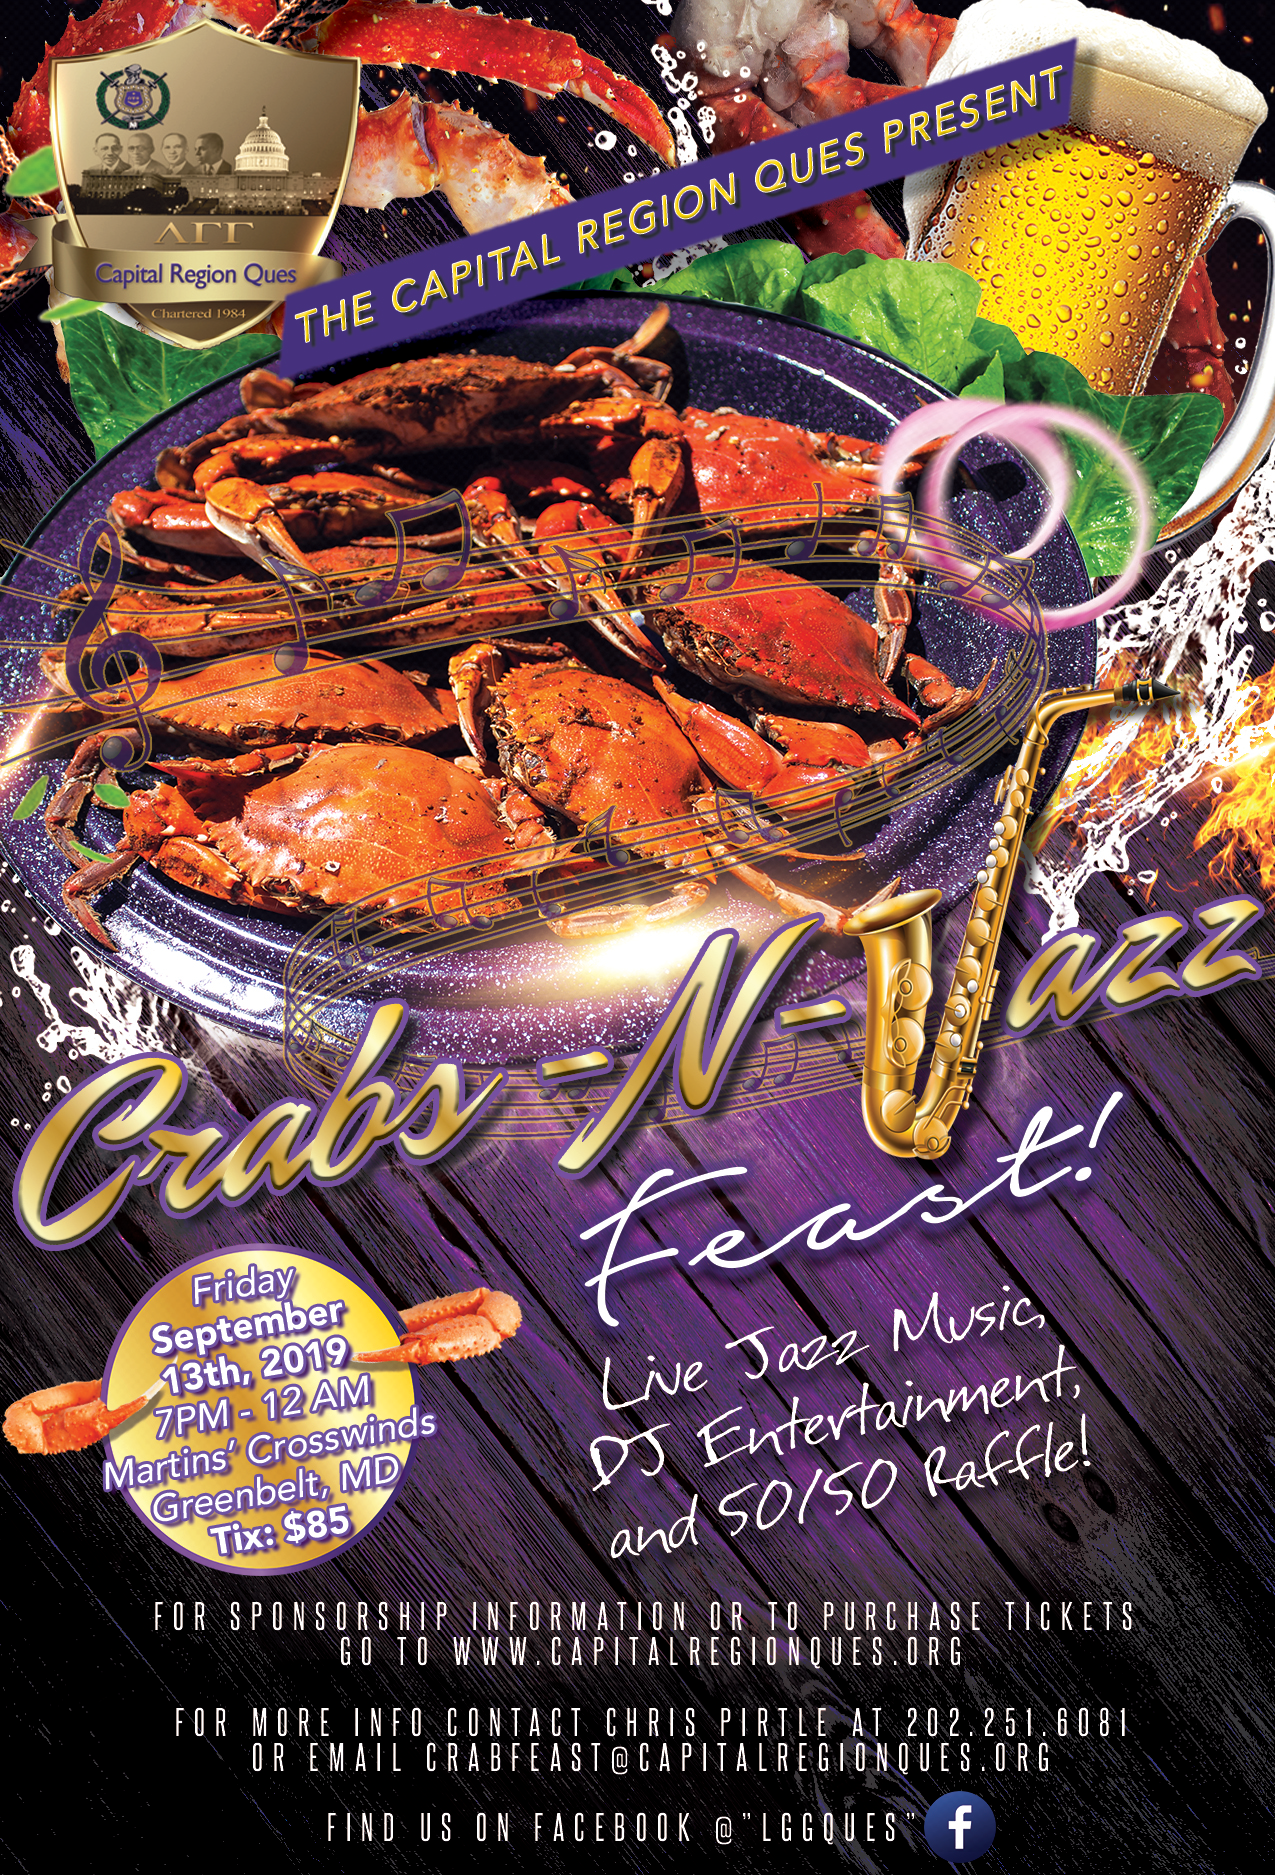 Crabs-N-Jazz Crab Feast